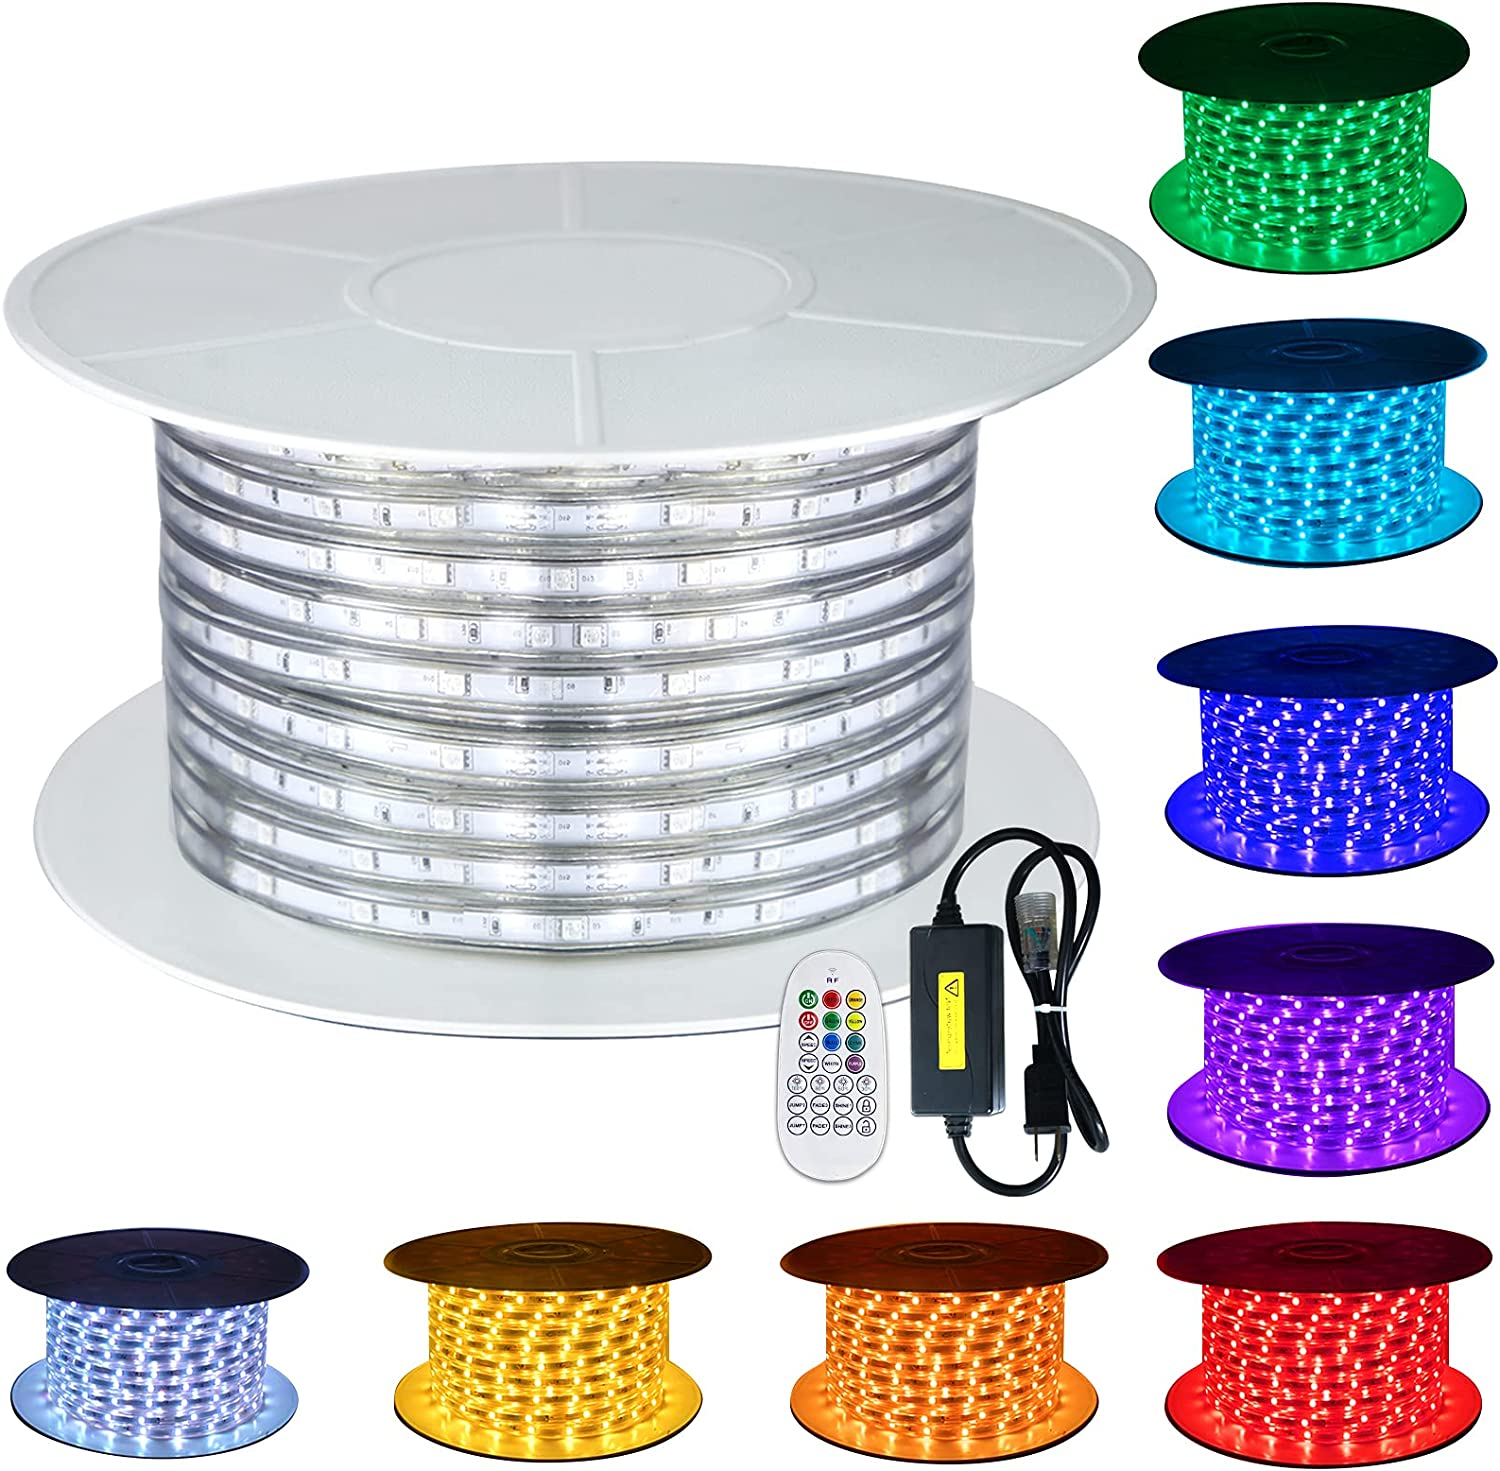 110V Challenge the Max 76% OFF lowest price of Japan ☆ GuoTonG 8 Colors RGB Dimmable 131.2ft Light Outdoor 4 Strip